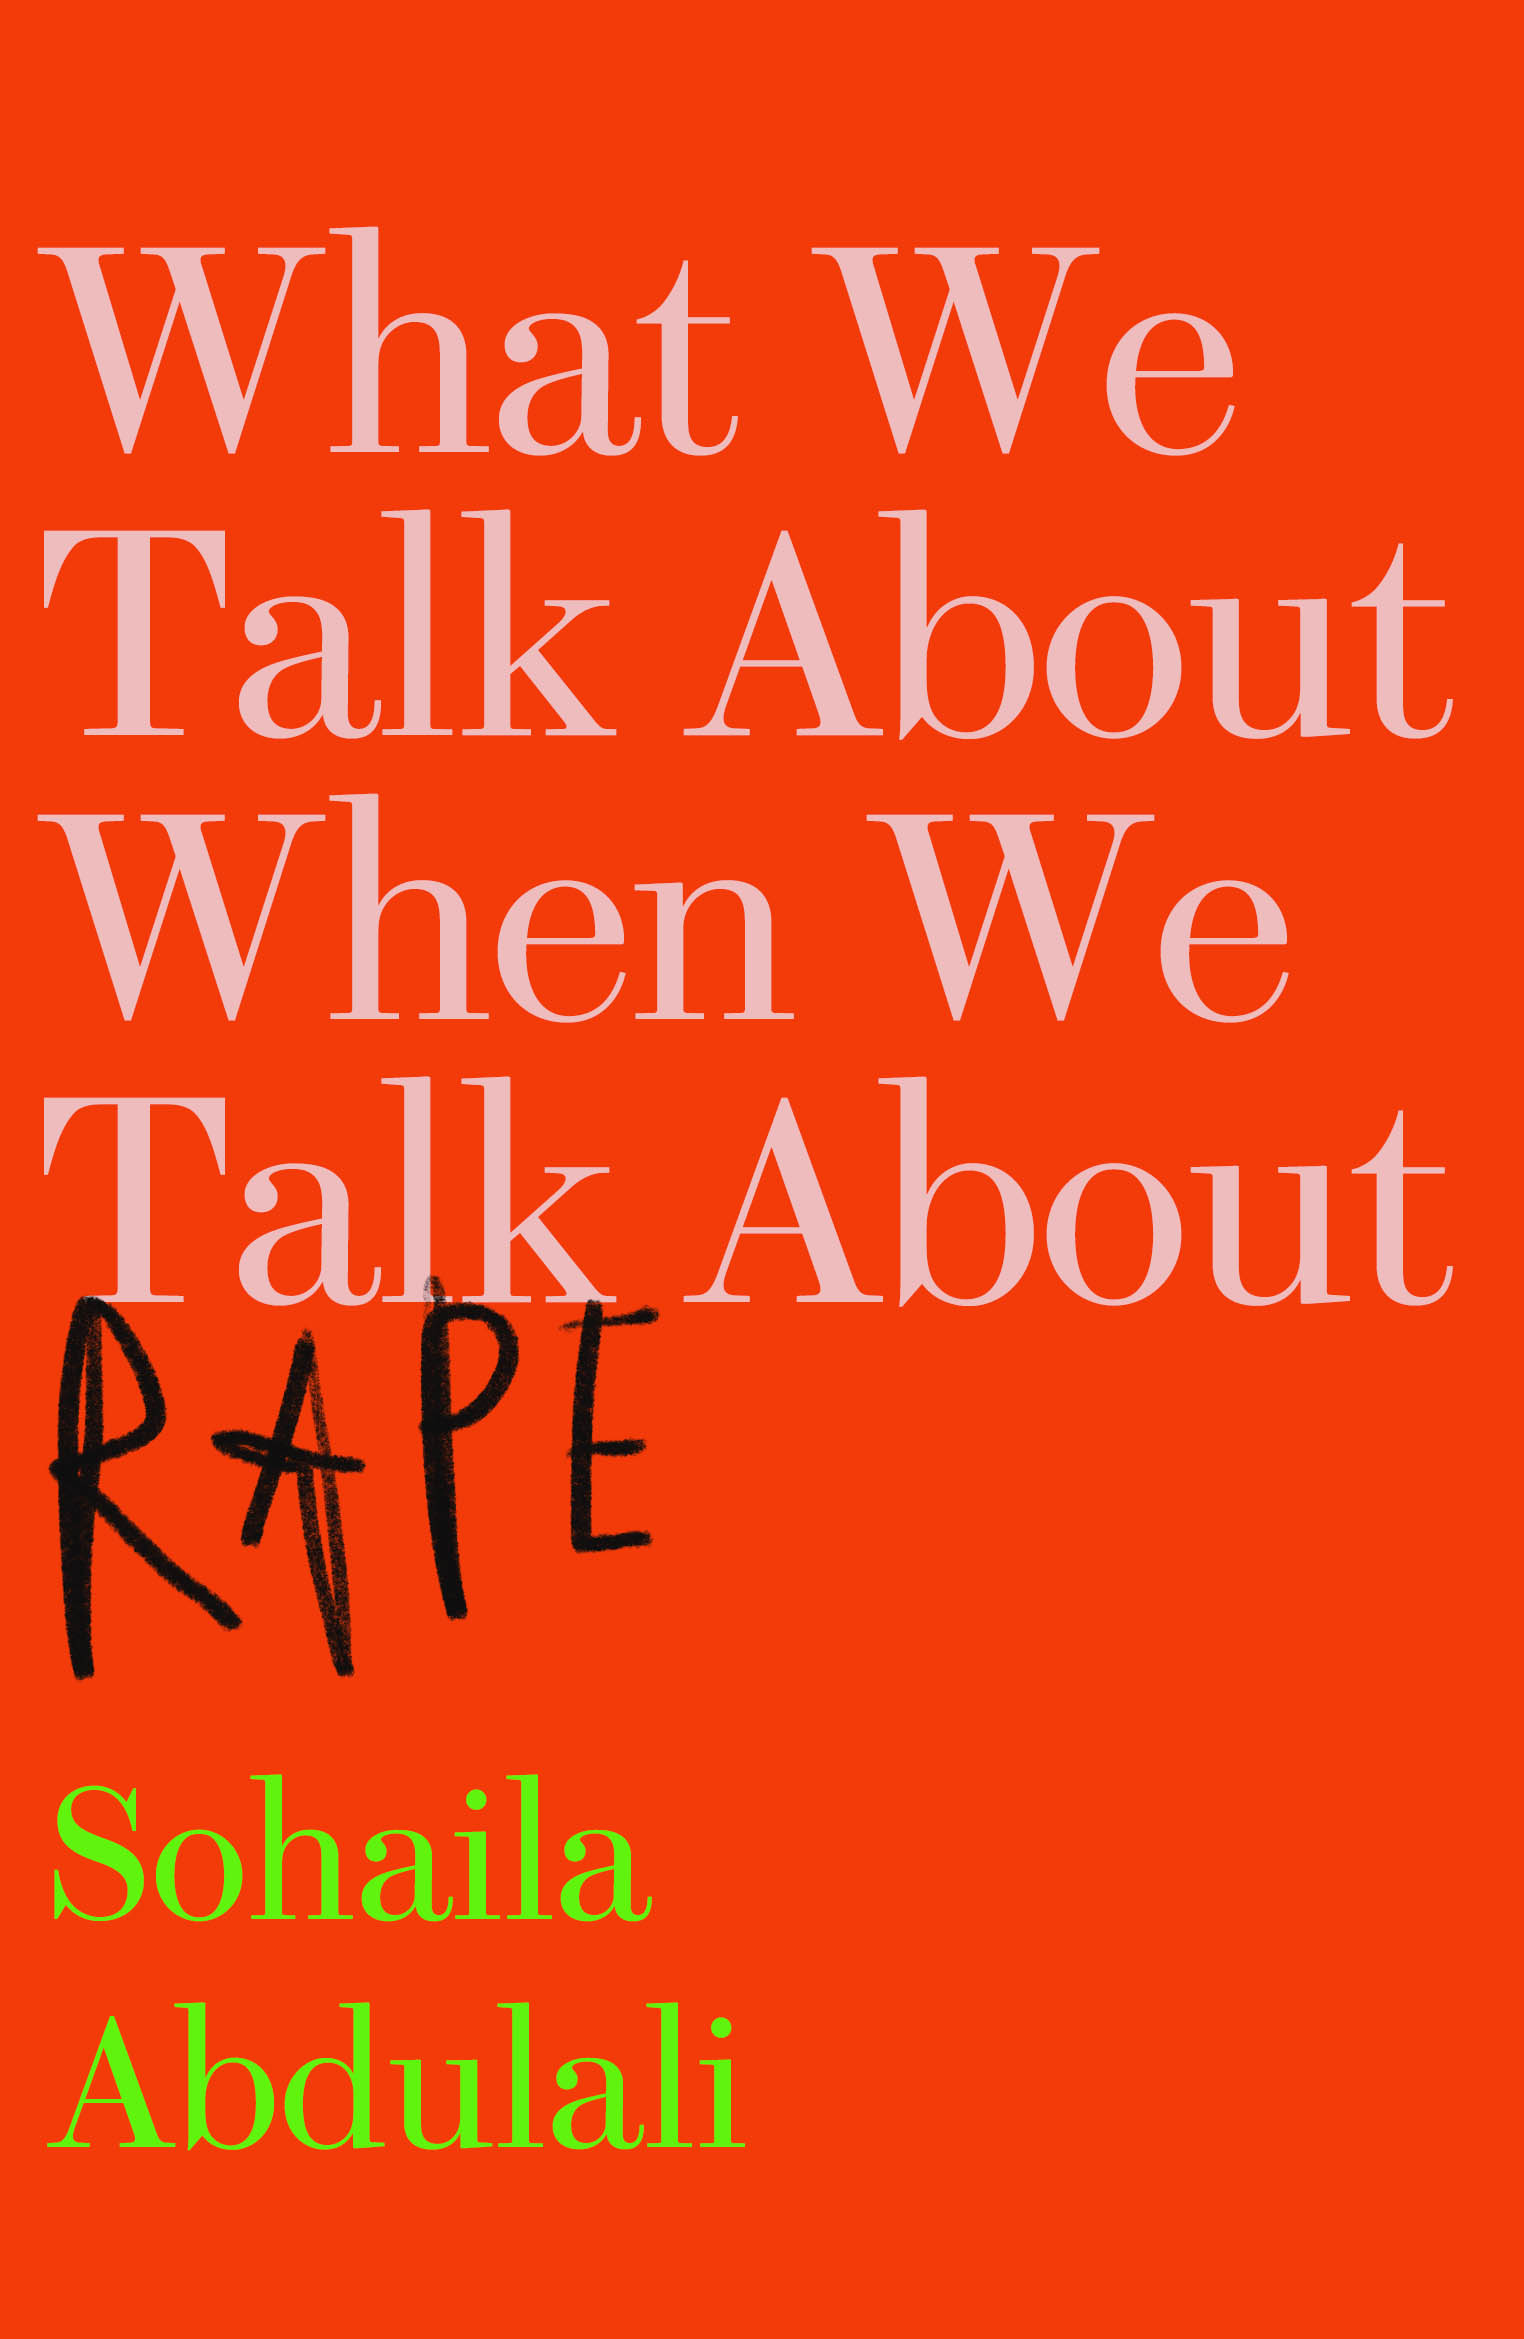 Image result for what we talk about when we talk about rape